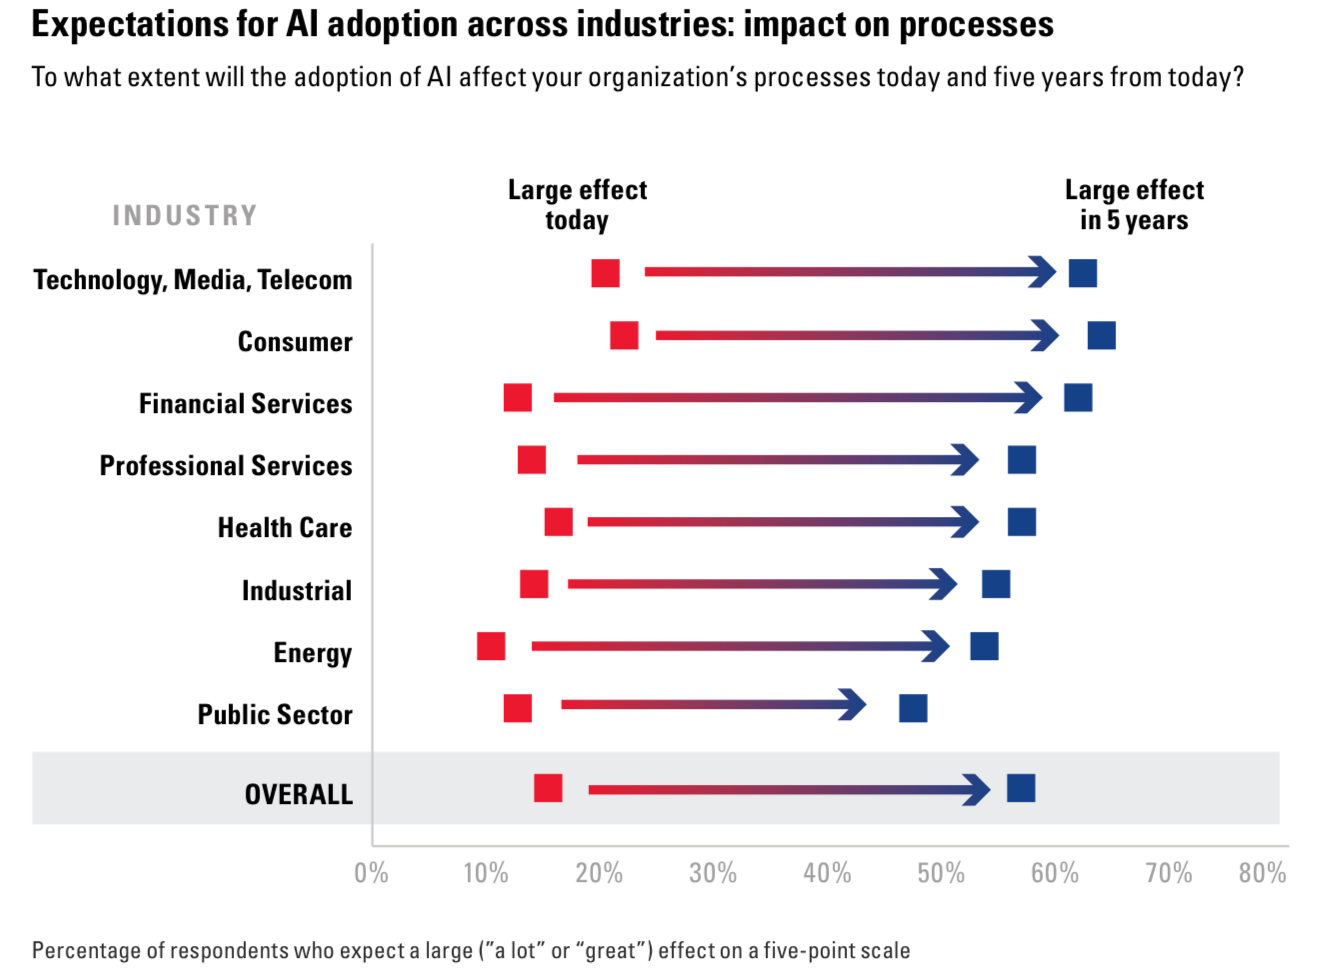 Figure 3: Expectations for AI adoption across industries: impact on processes (BCG & MIT 2017)